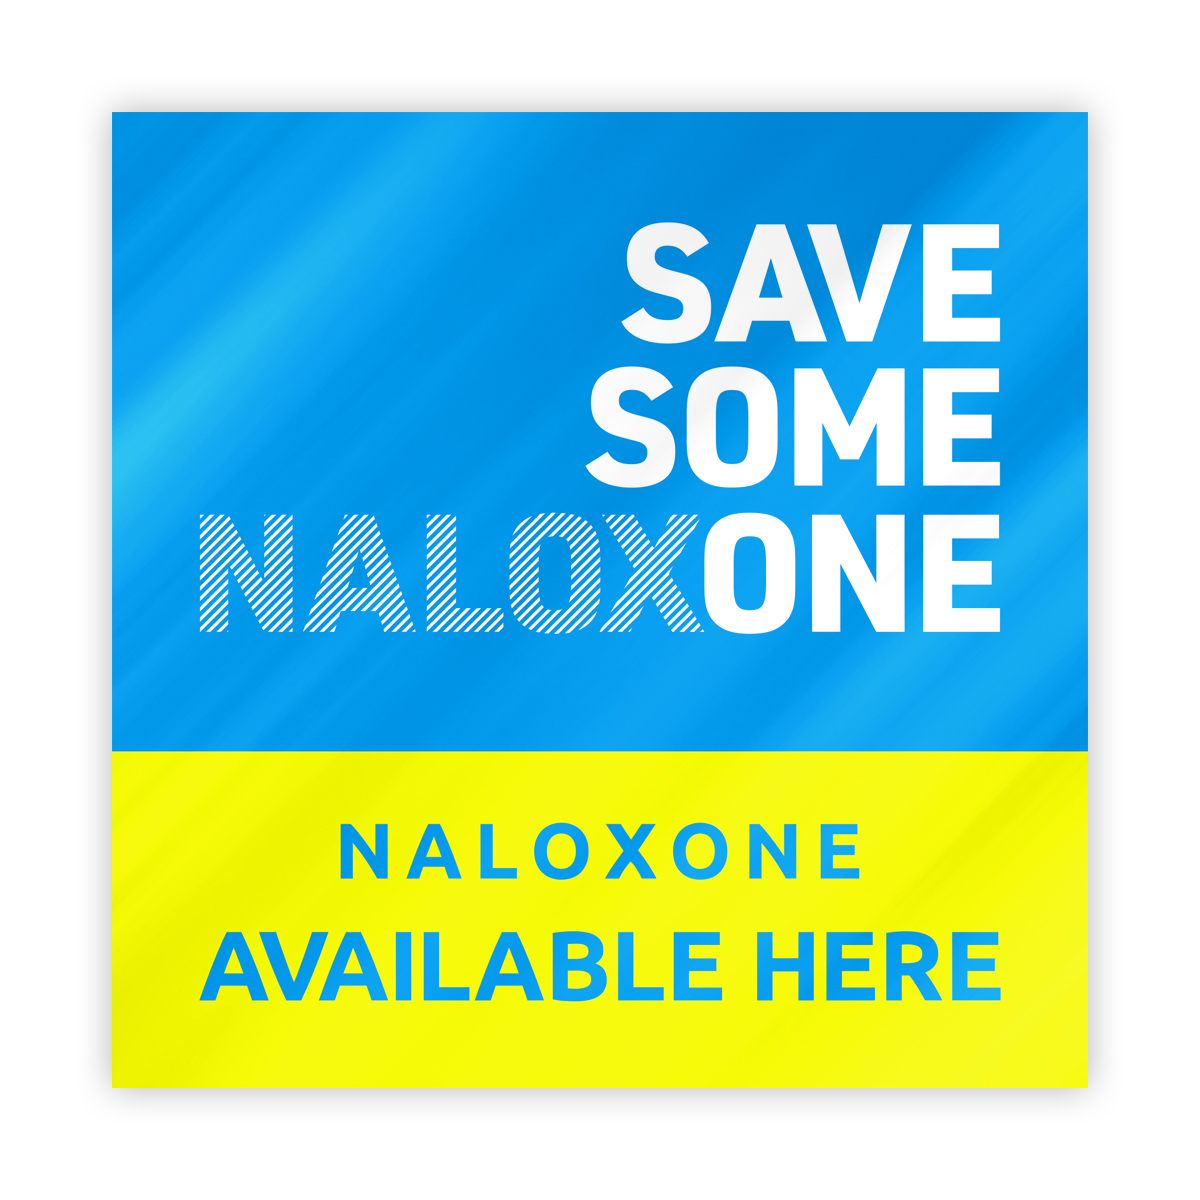 Save someone naloxone (window sticker)